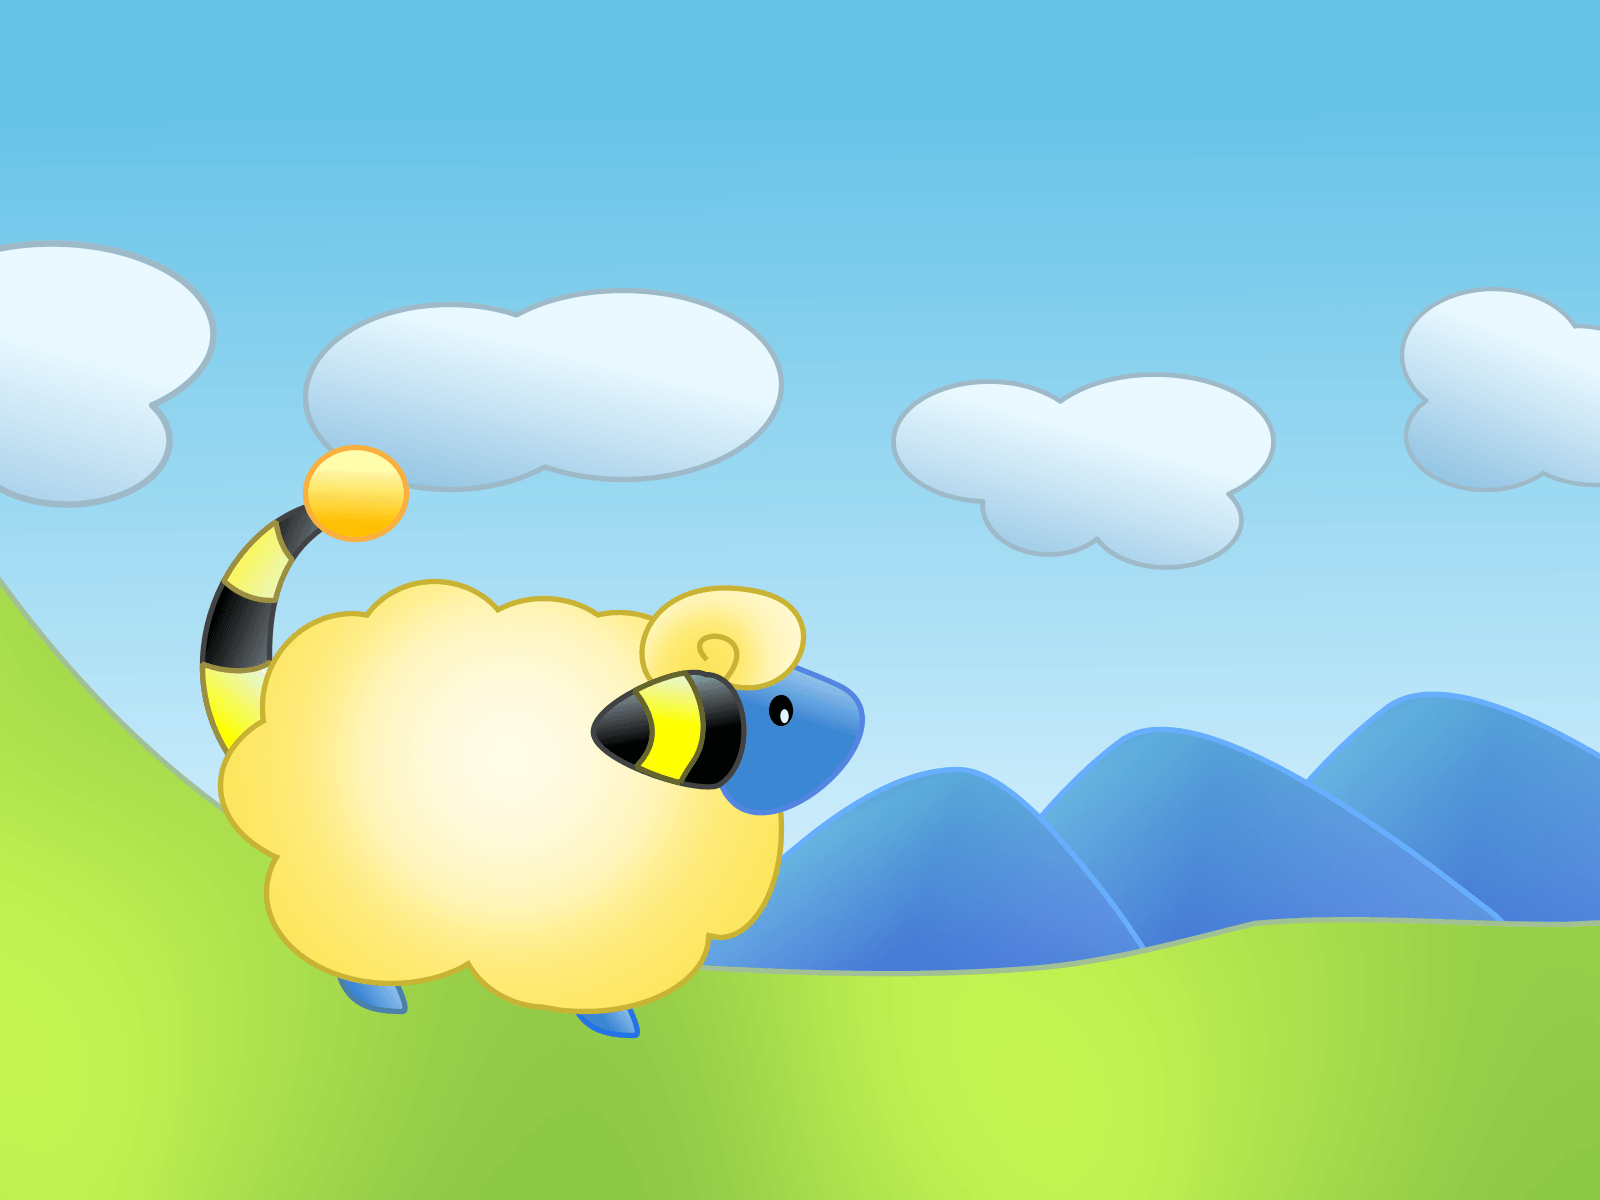 Mareep by dakki000 on DeviantArt